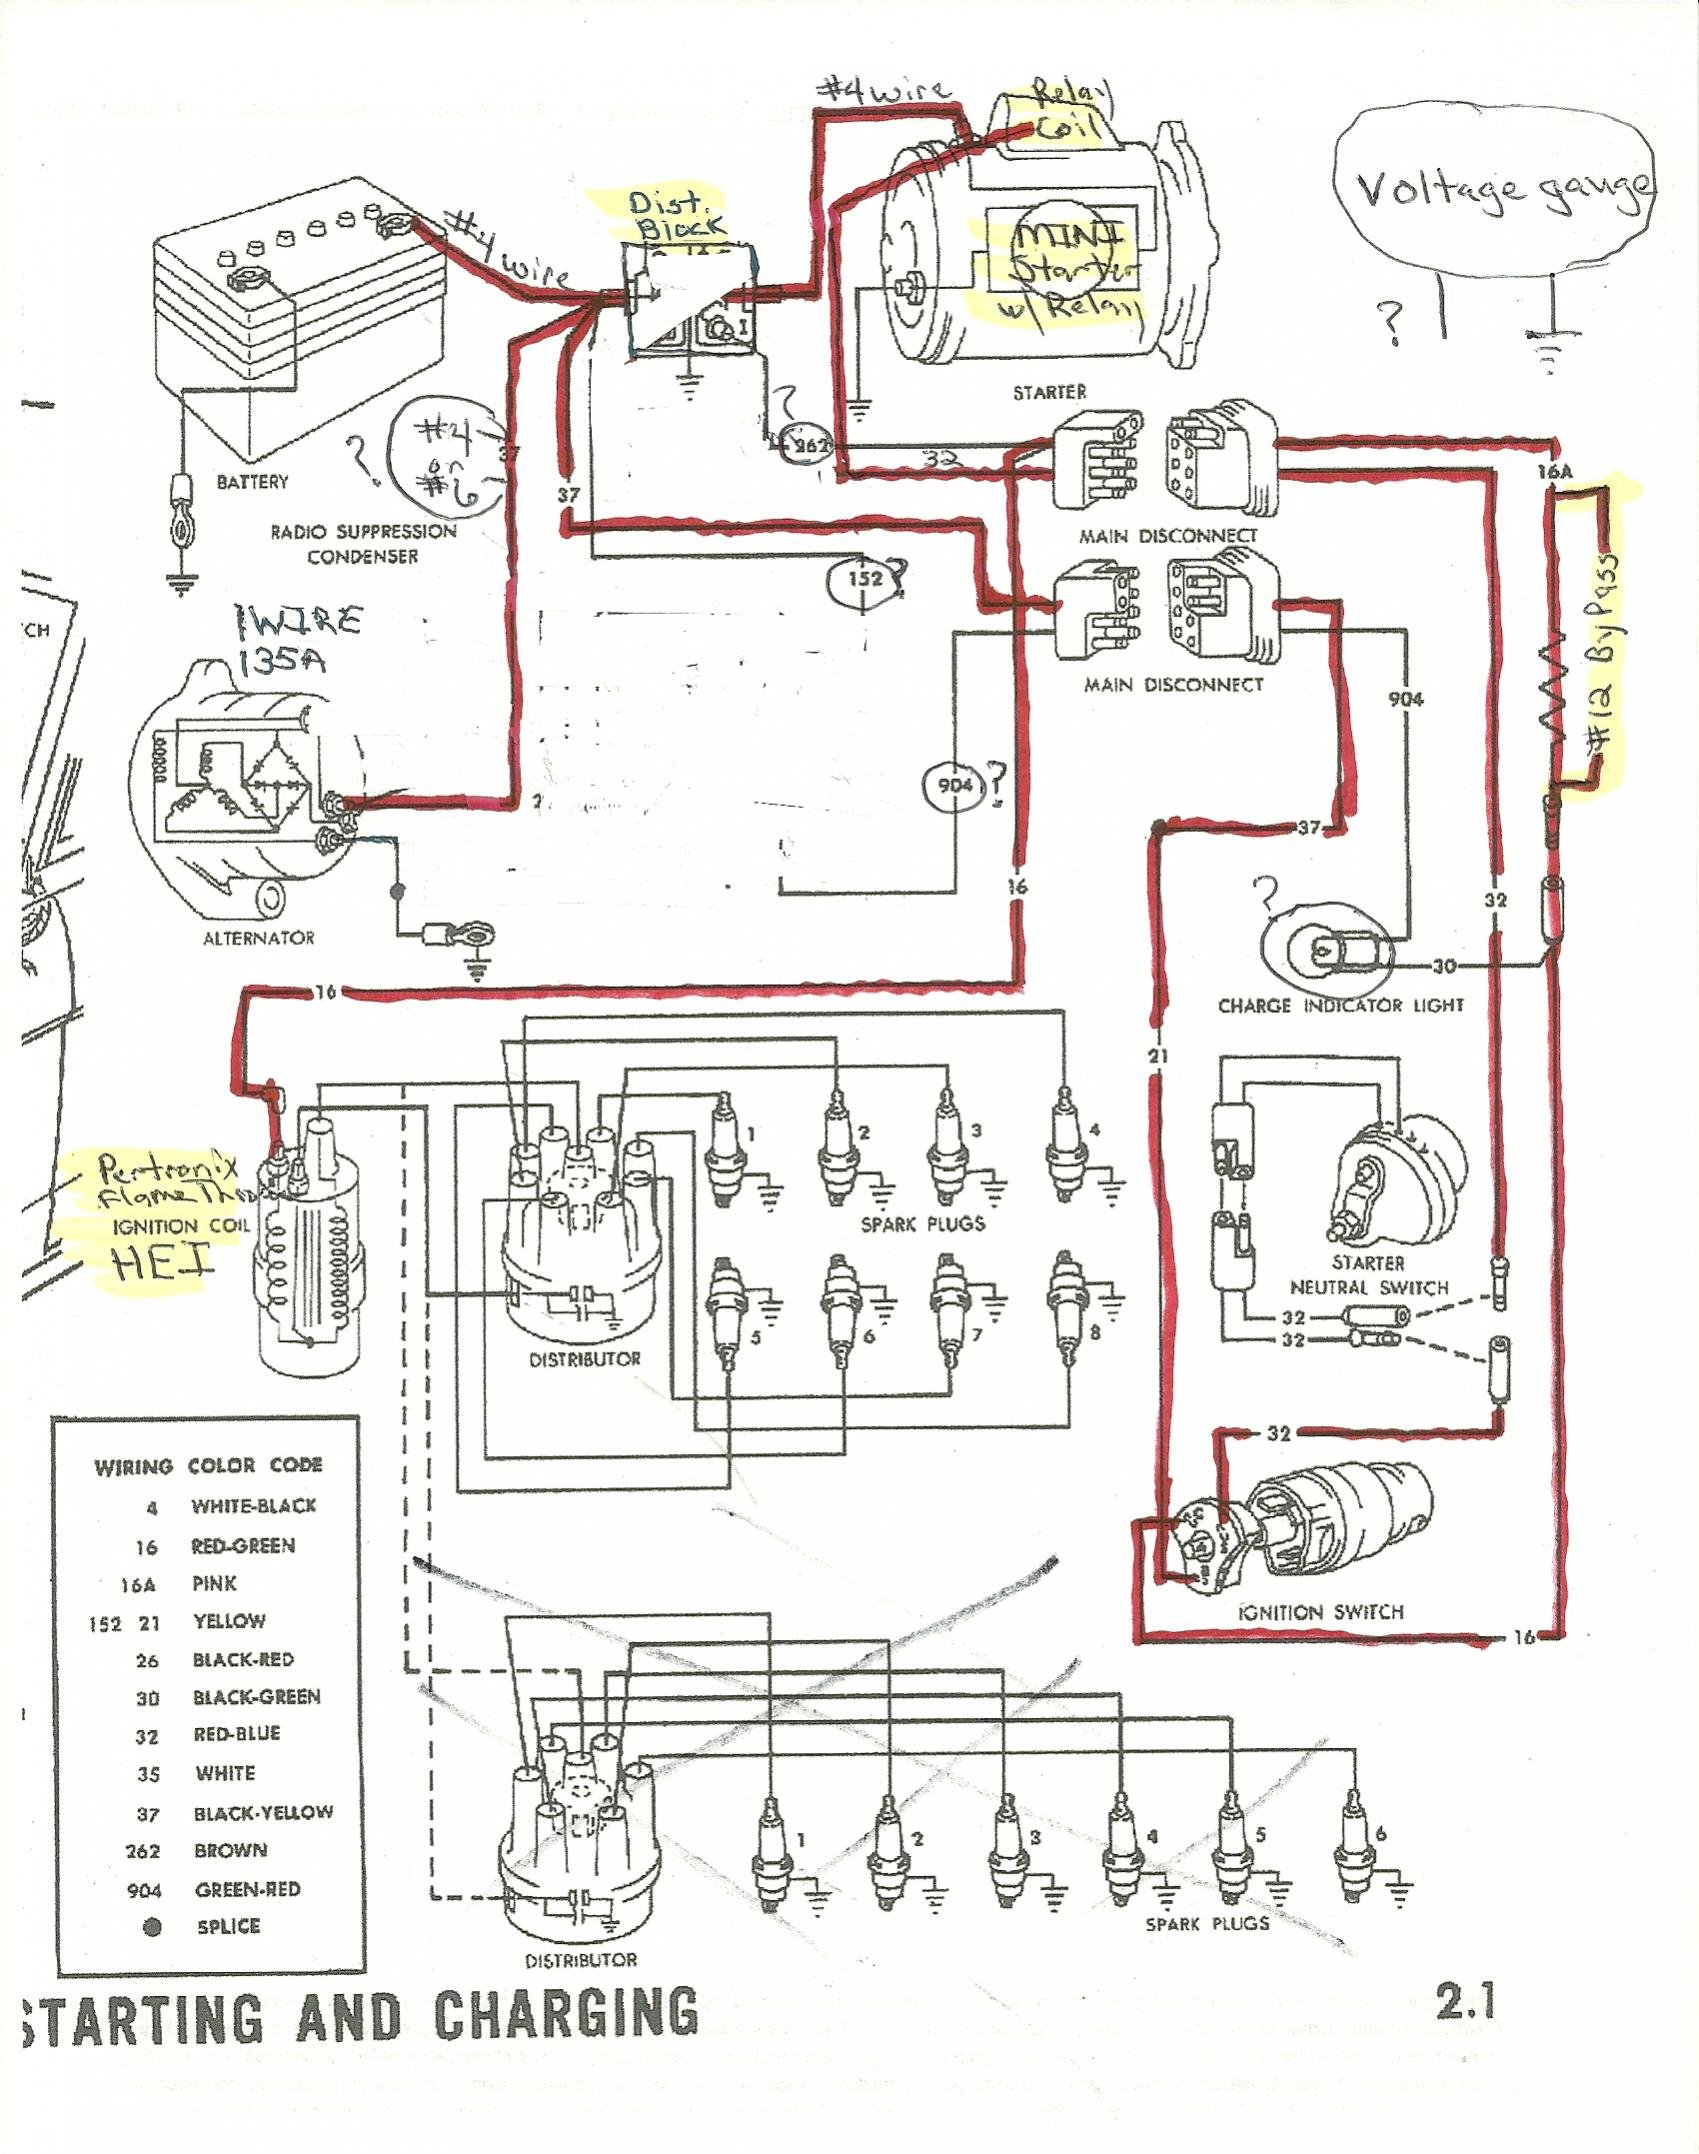 Engine Wiring Diagram 1965 Library Ford Diesel Starter Alternator And Distributor Mustang Forum Dodge Voltage Regulator